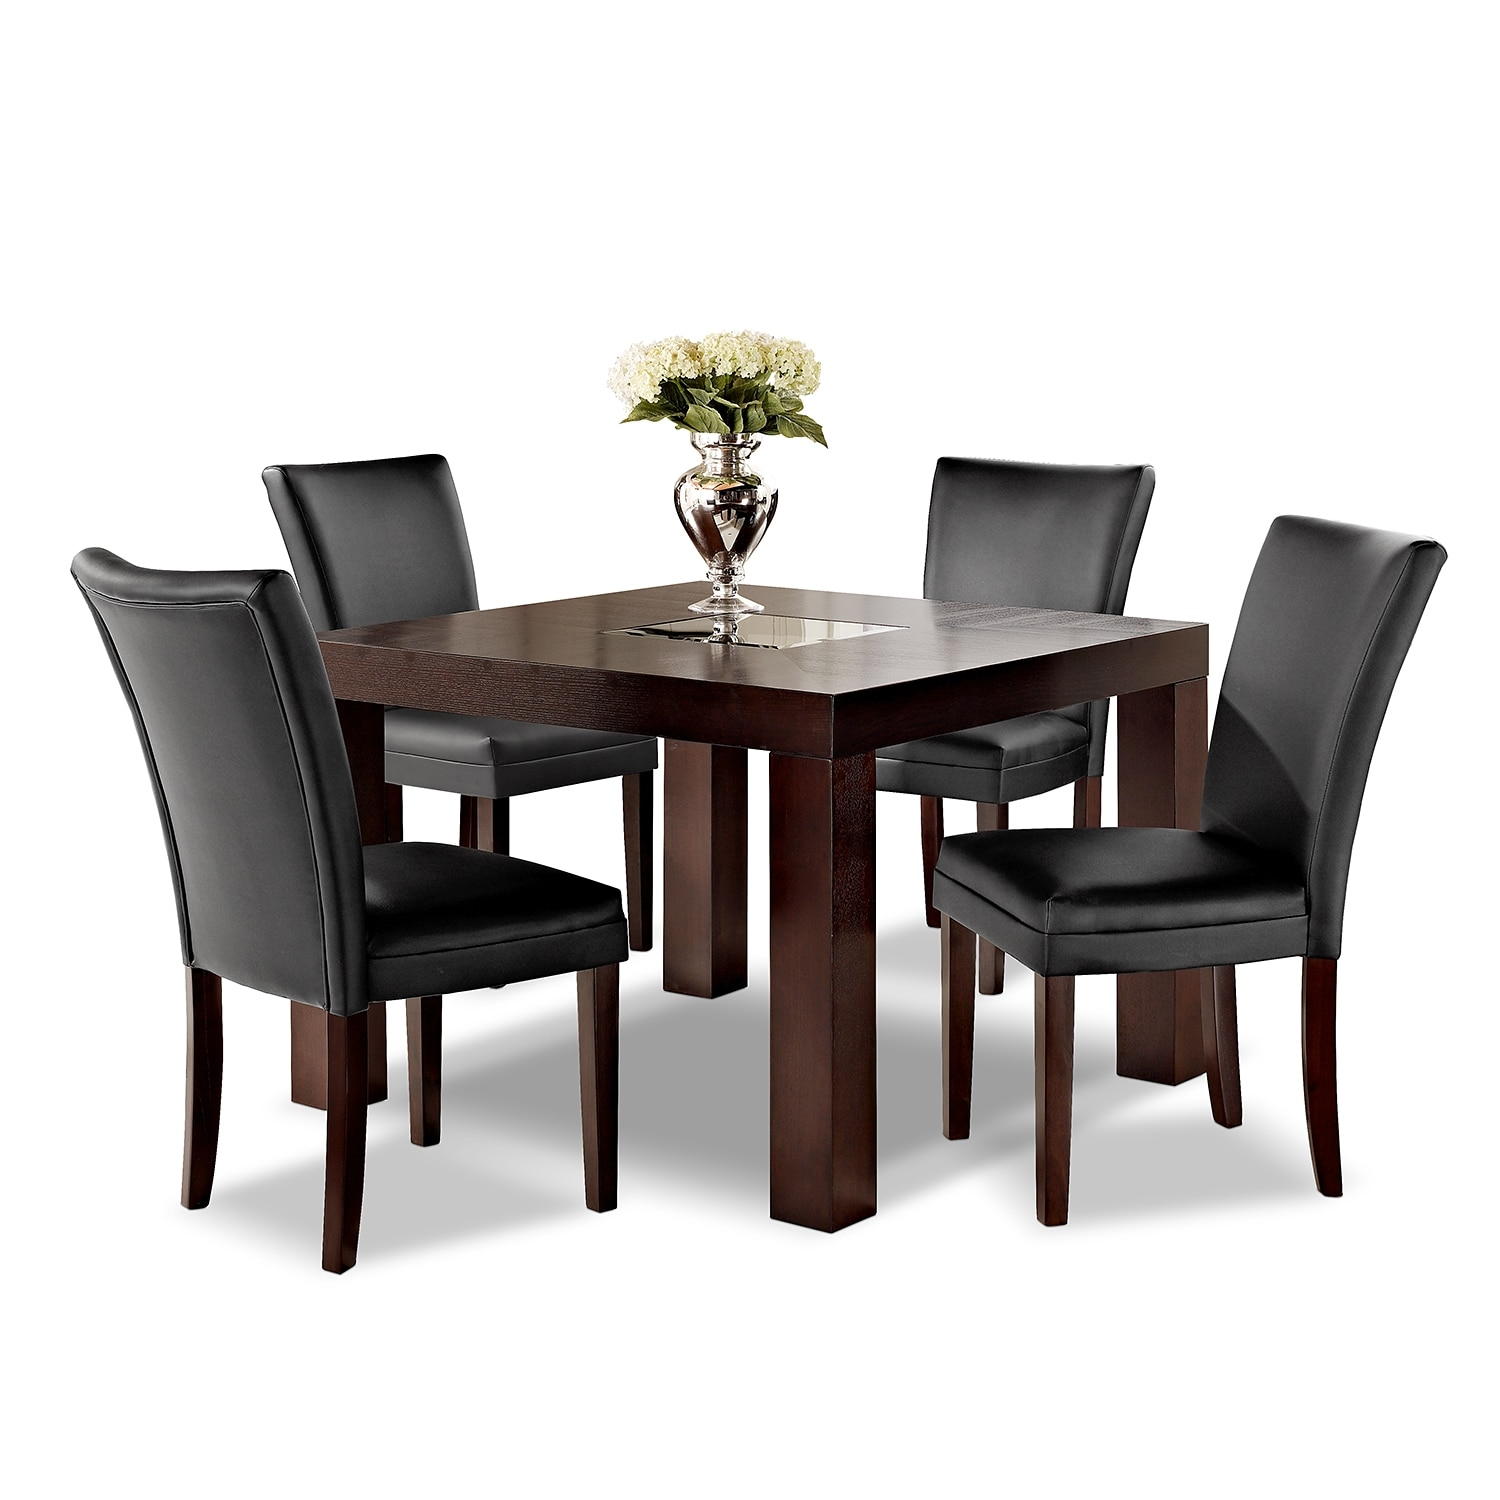 Dining Room Furniture Tango Caravelle 5 Pc Dinette 42